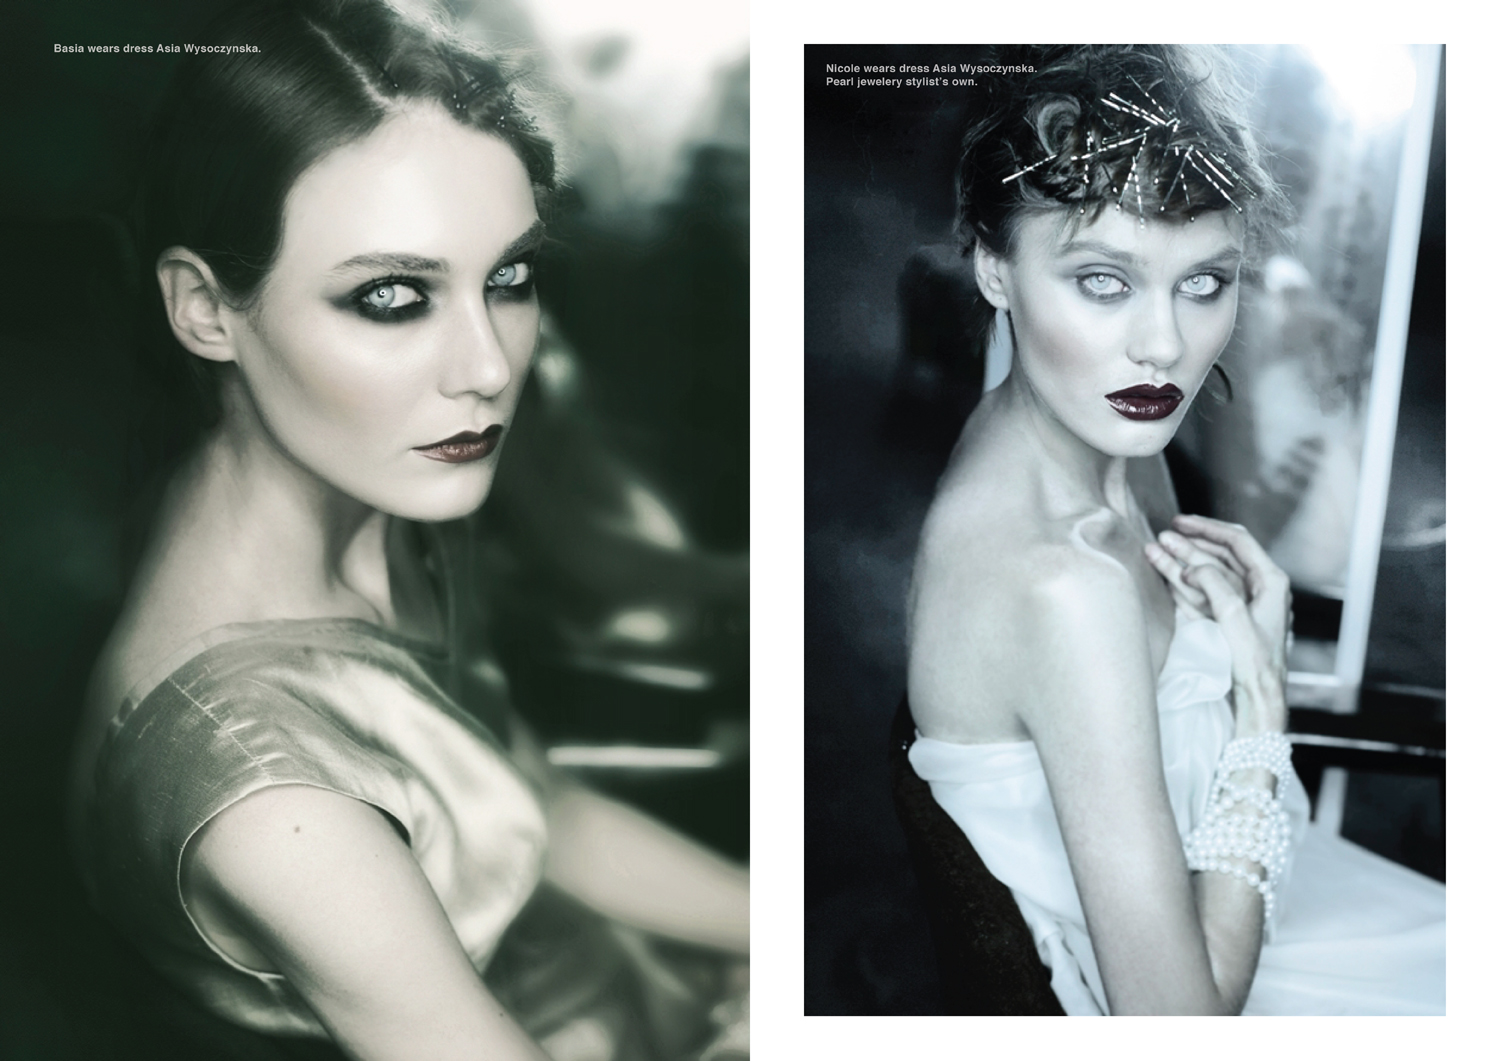 Left page, Basia wears dress Asia Wysoczynska. Right page, Nicole wears dress dress Asia Wysoczynska. Pearl jewelery stylist's own.